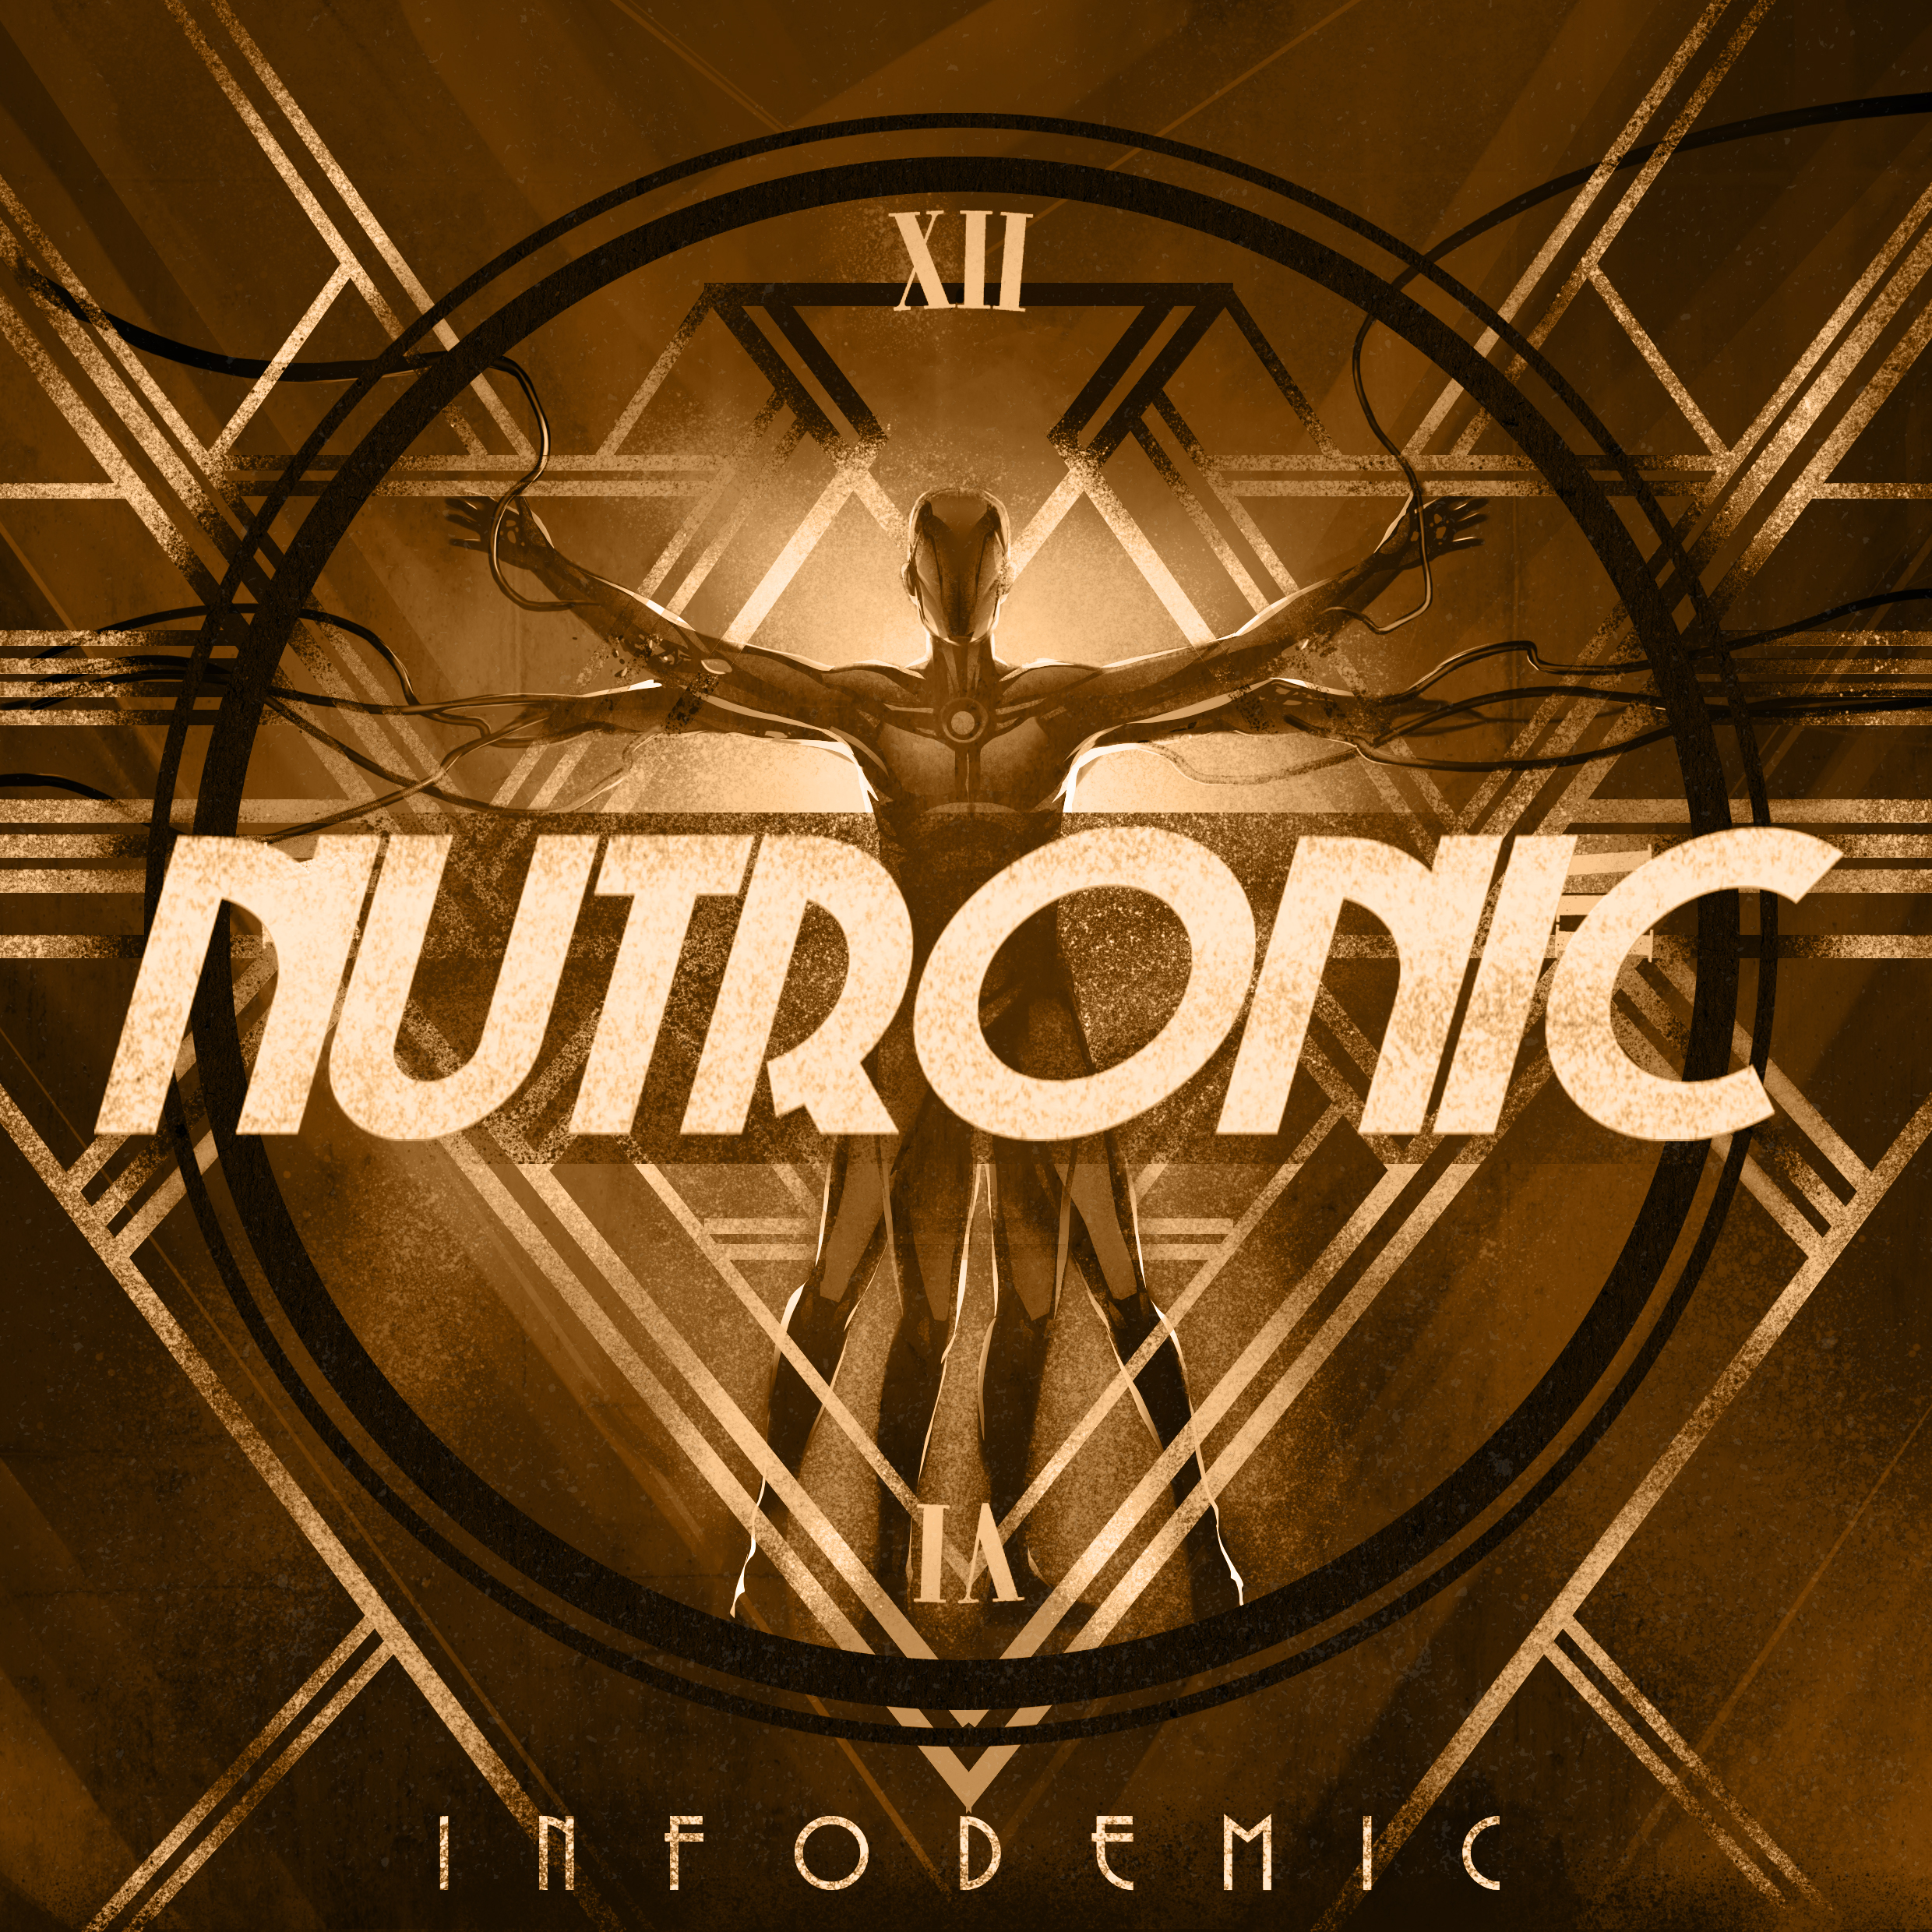 NUTRONIC - Infodemic (Single) Image